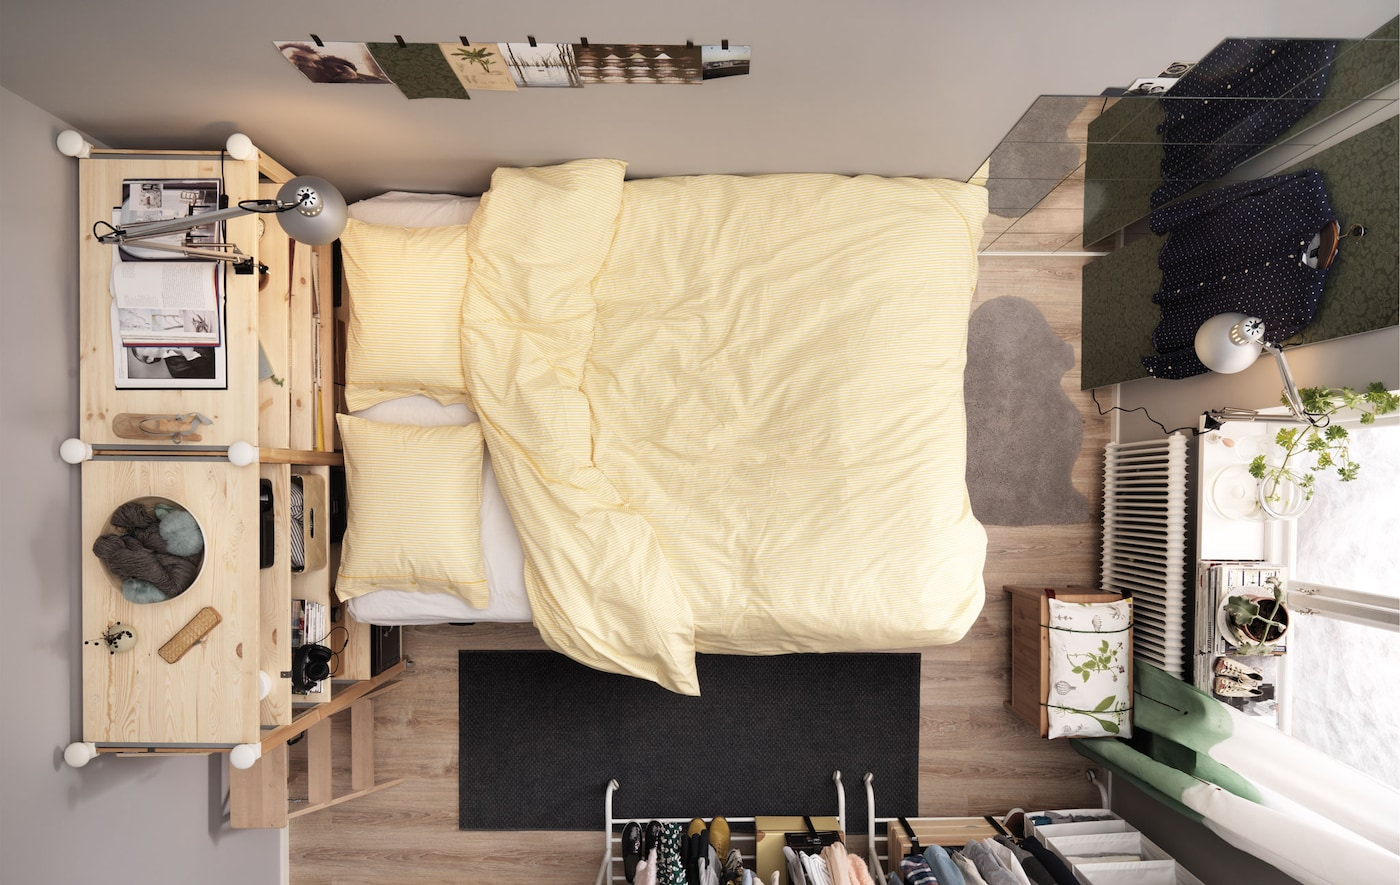 Space-saving ideas for a rental bedroom - IKEA